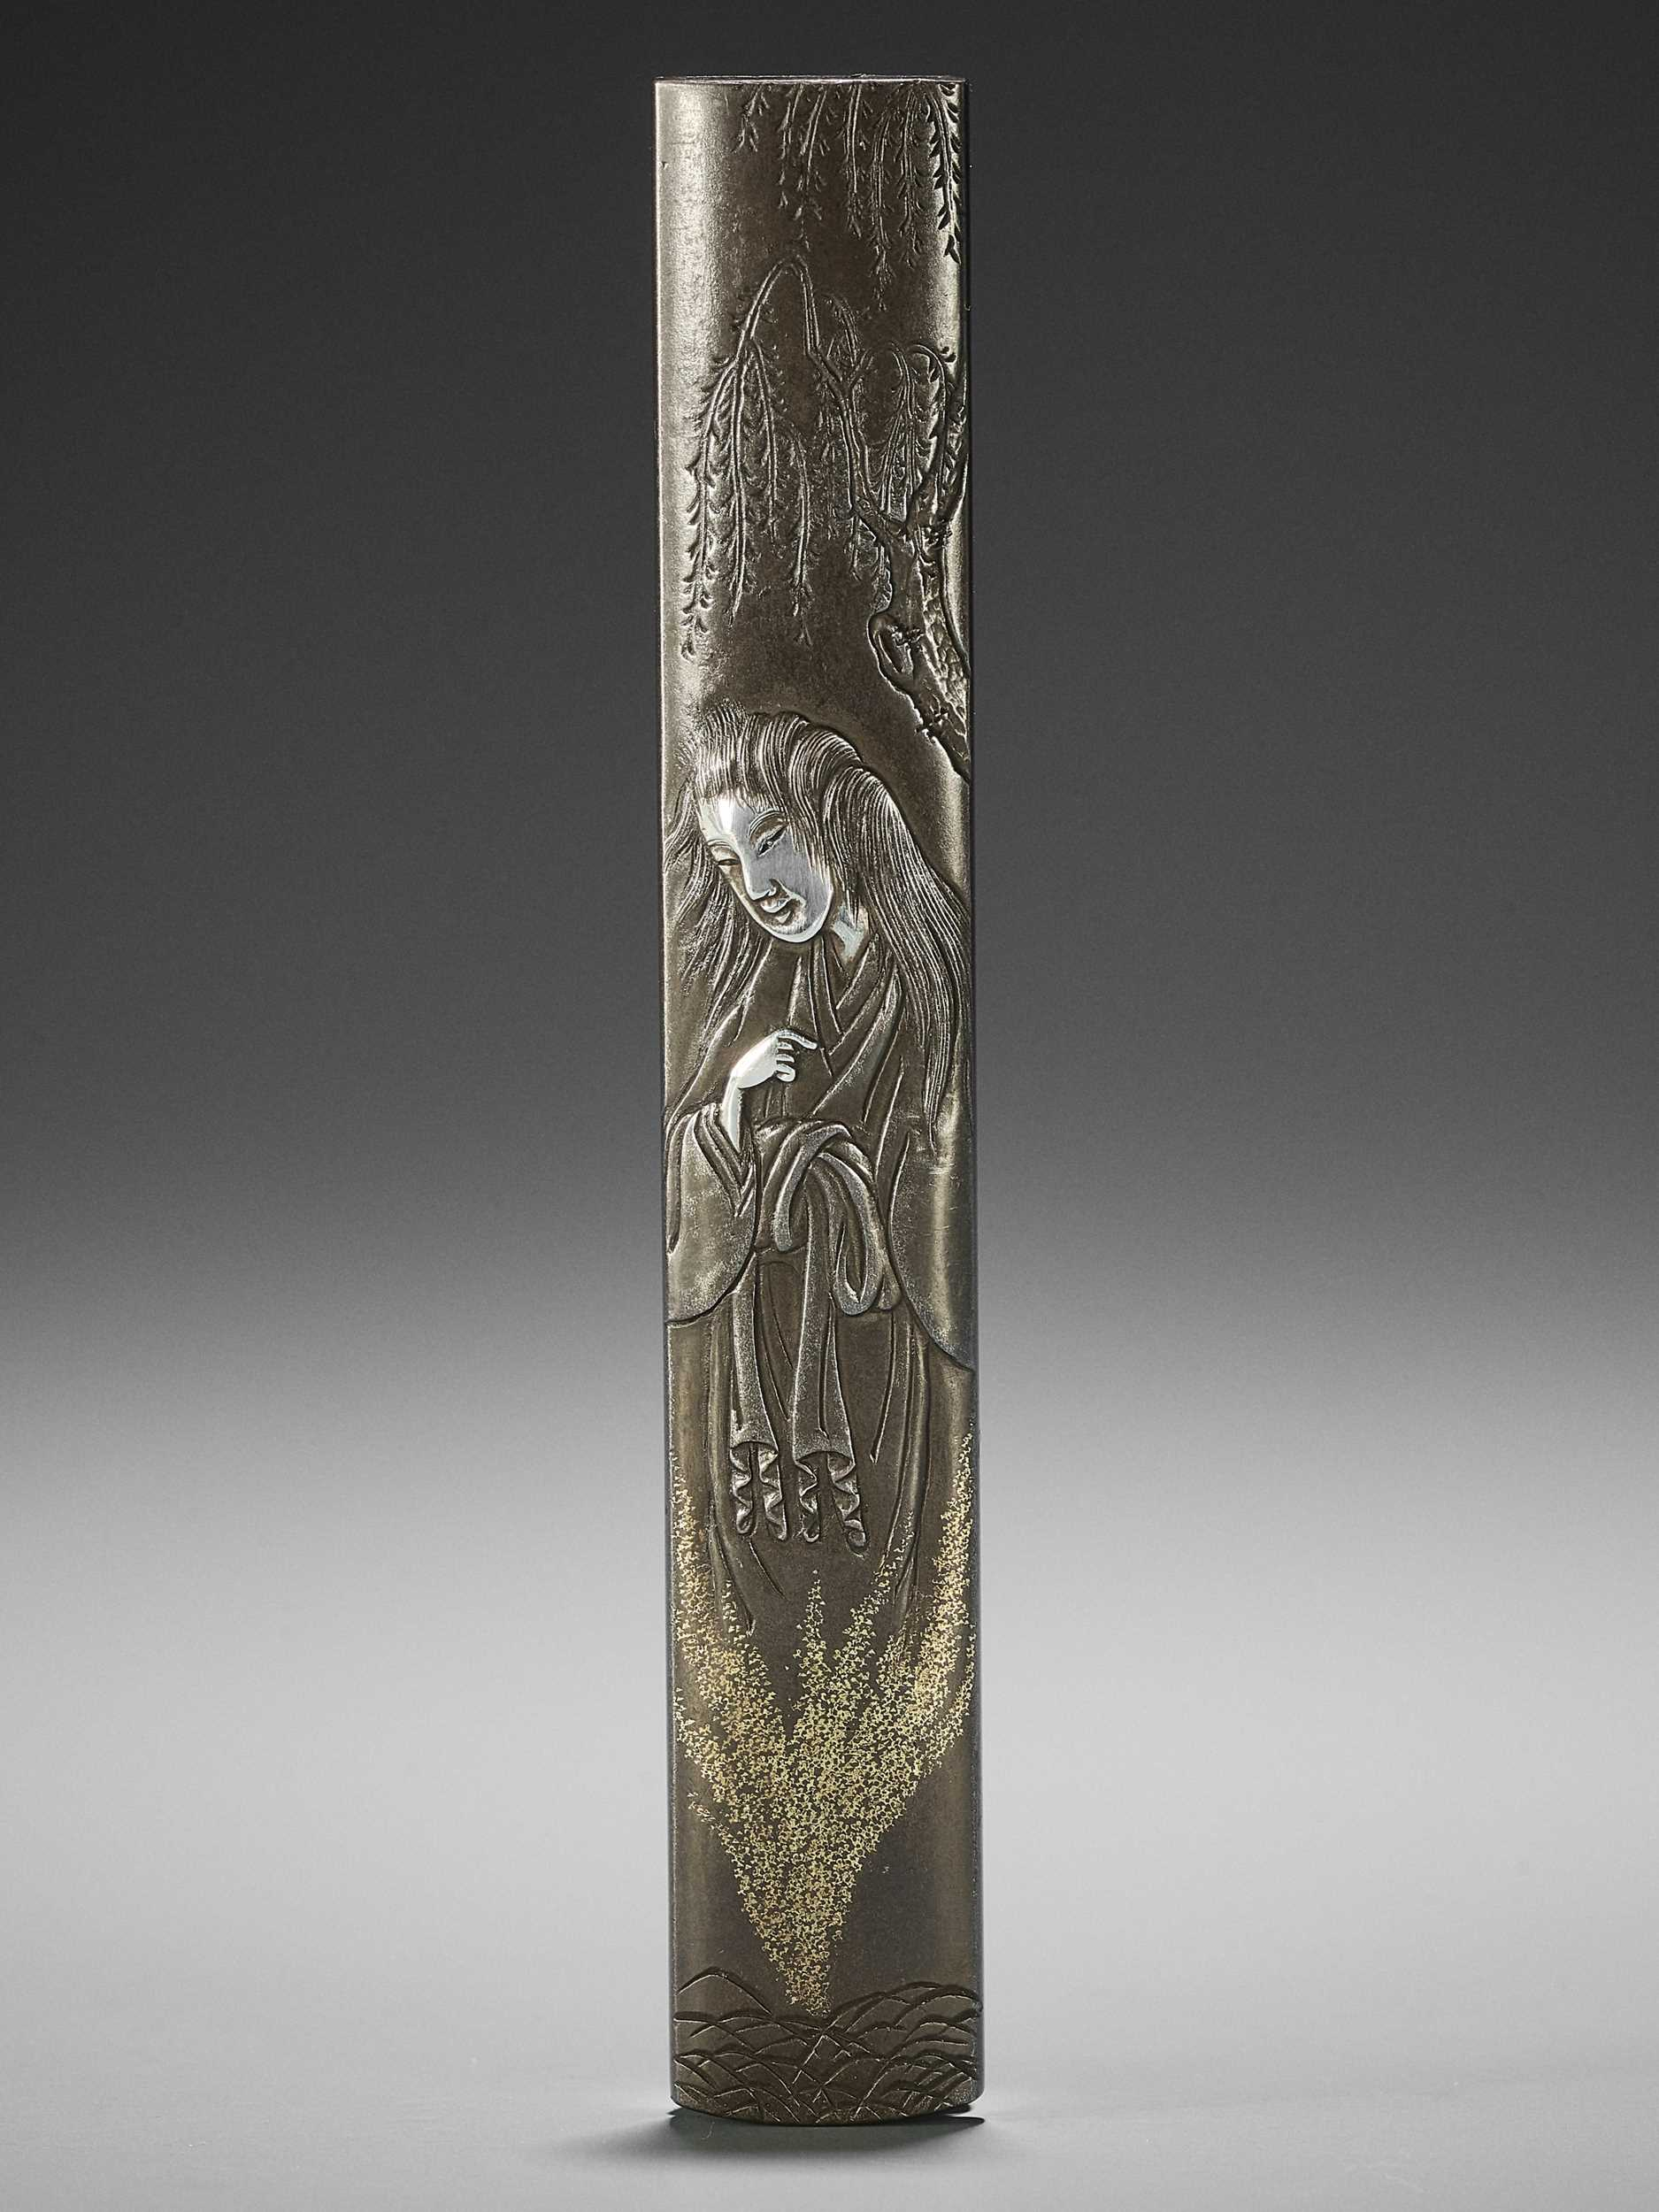 Lot 41 - HAMANO NAOYUKI: A RARE SILVER AND GOLD-INLAID SHIBUICHI KOZUKA WITH WILLOW TREE GHOST